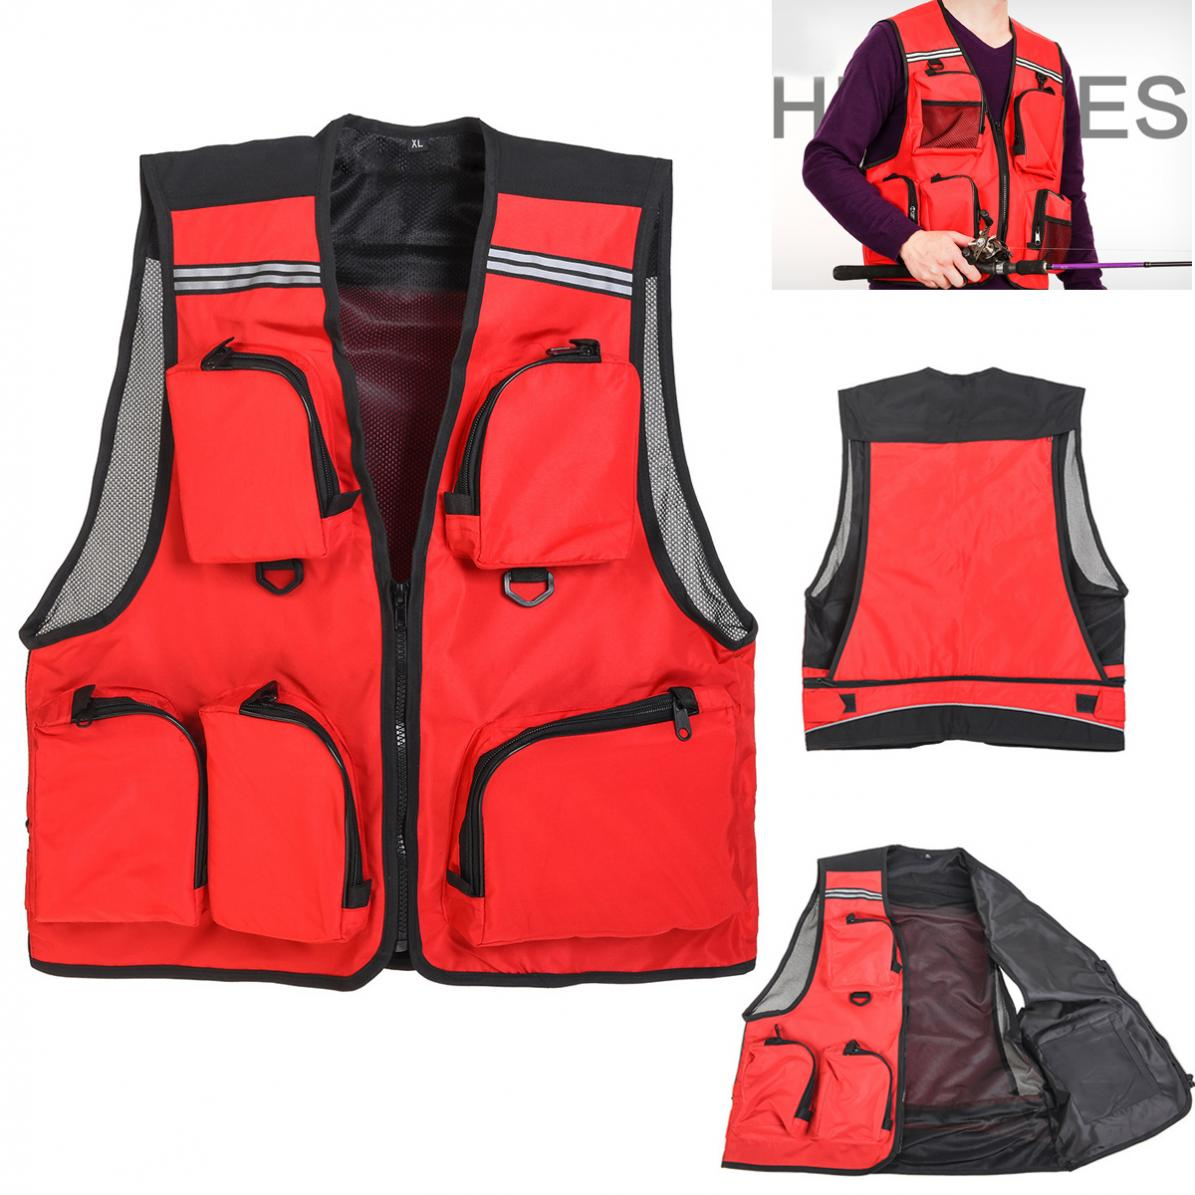 Fishing Tools Fishing Methodical Outdoor Sport Thin Breathable Fishing Vest 5 Pocket Quick Dry Mesh Waistcoat Jacket Fast Color